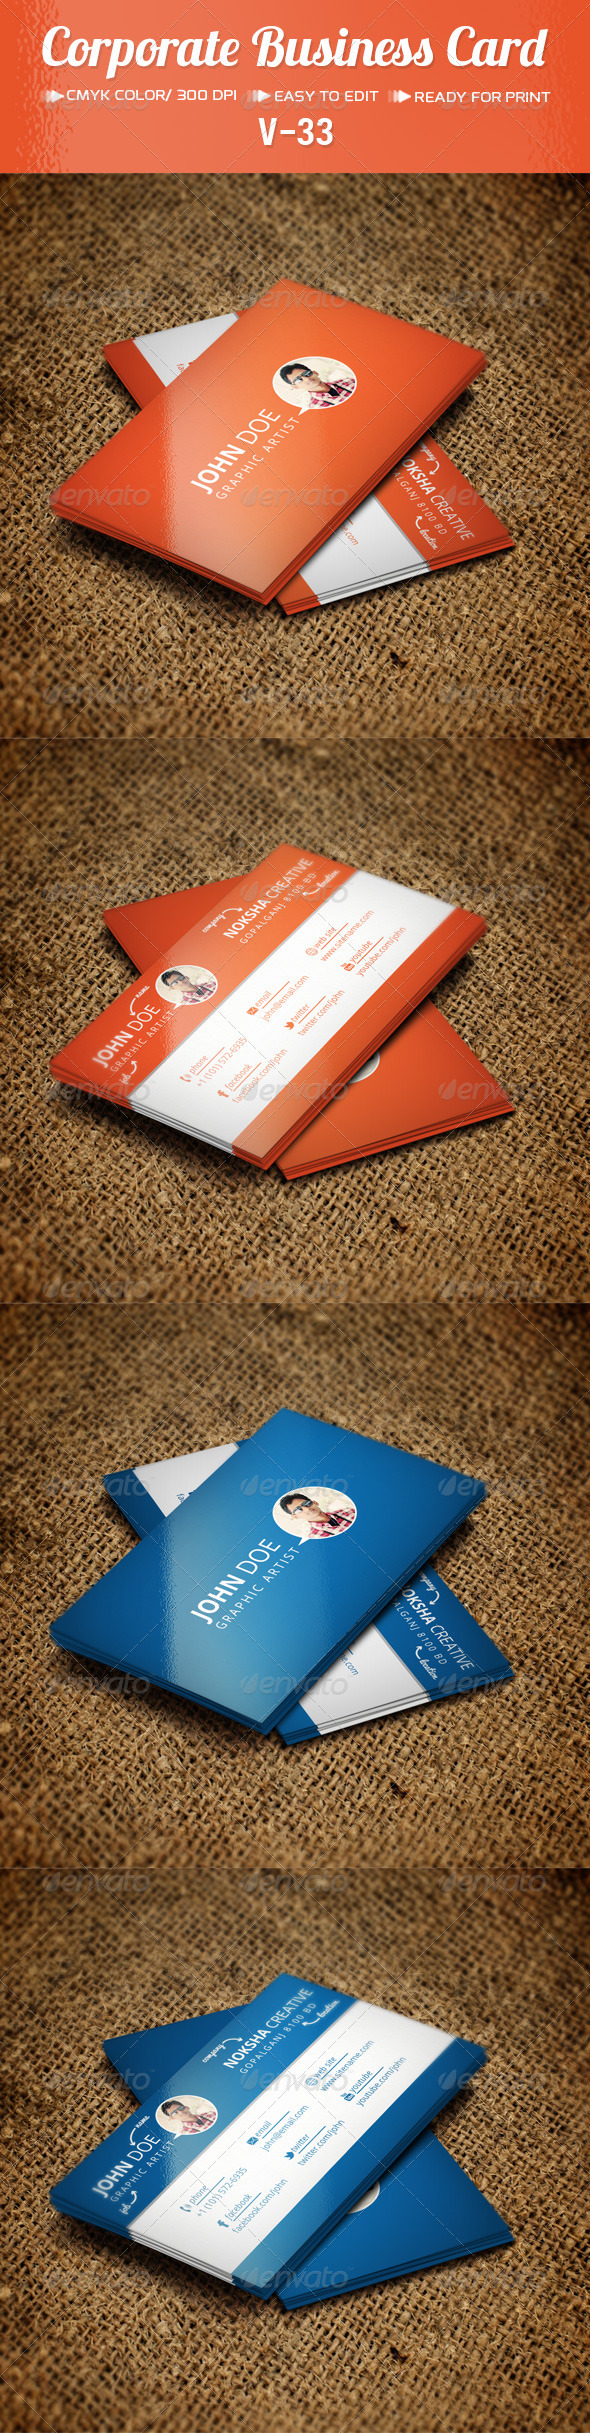 GraphicRiver Corporate Business Card V-33 5851219